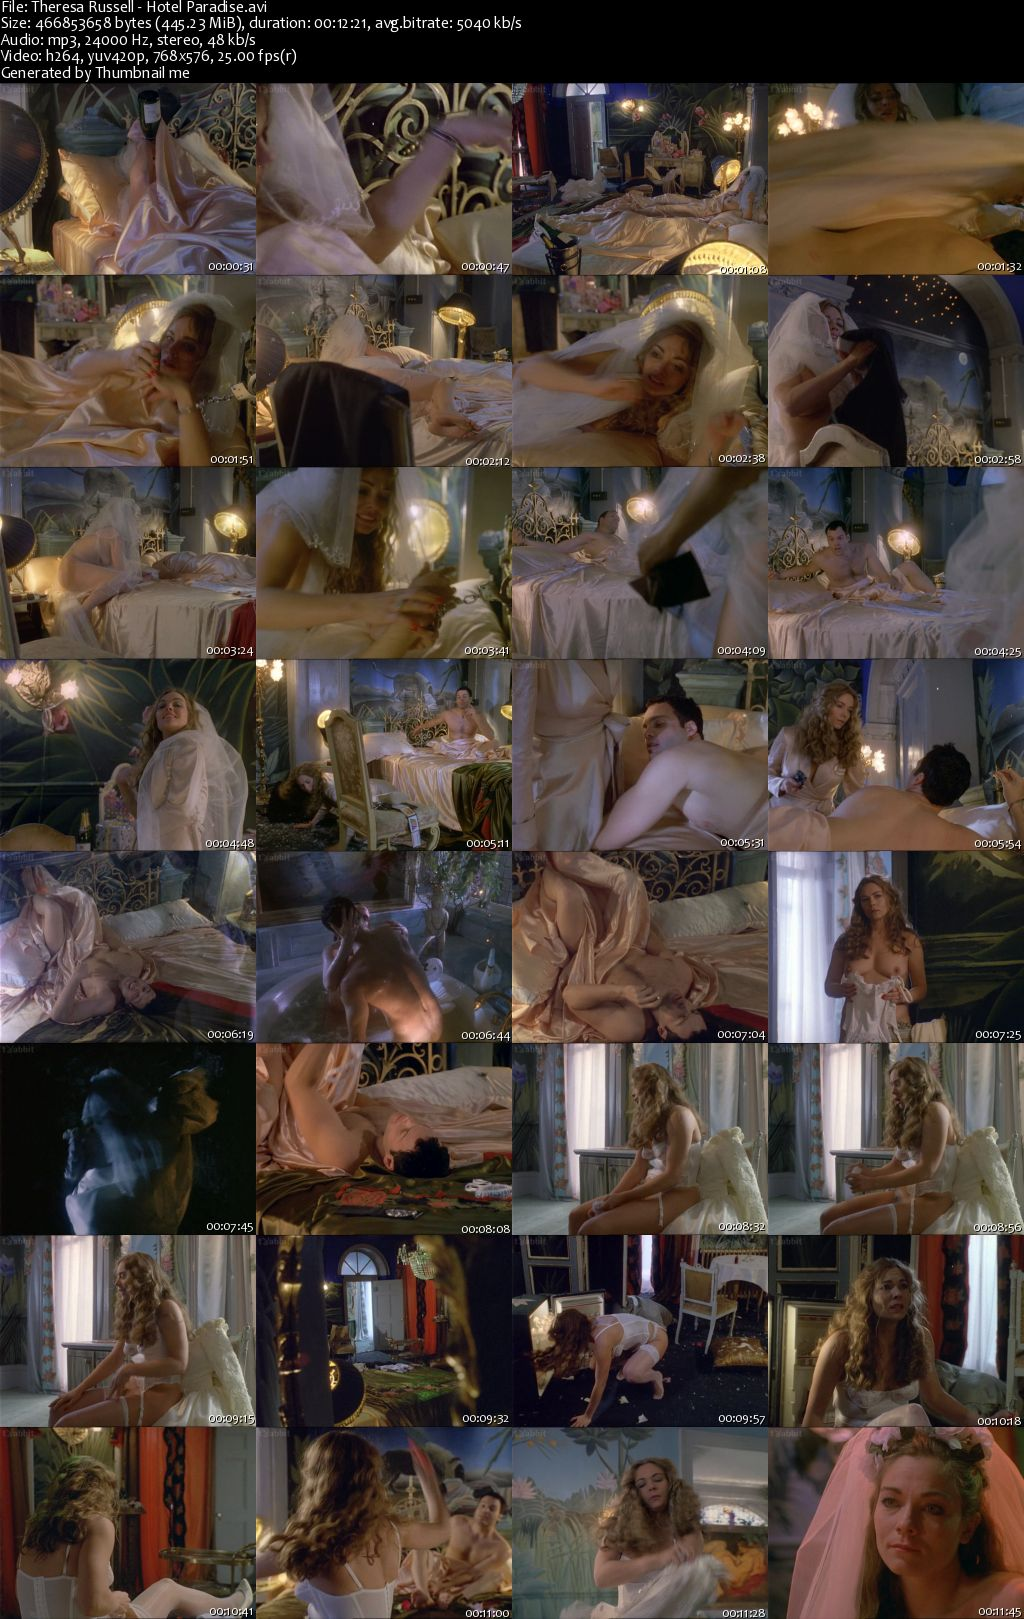 Theresa Russell - Hotel Paradise_s.jpg